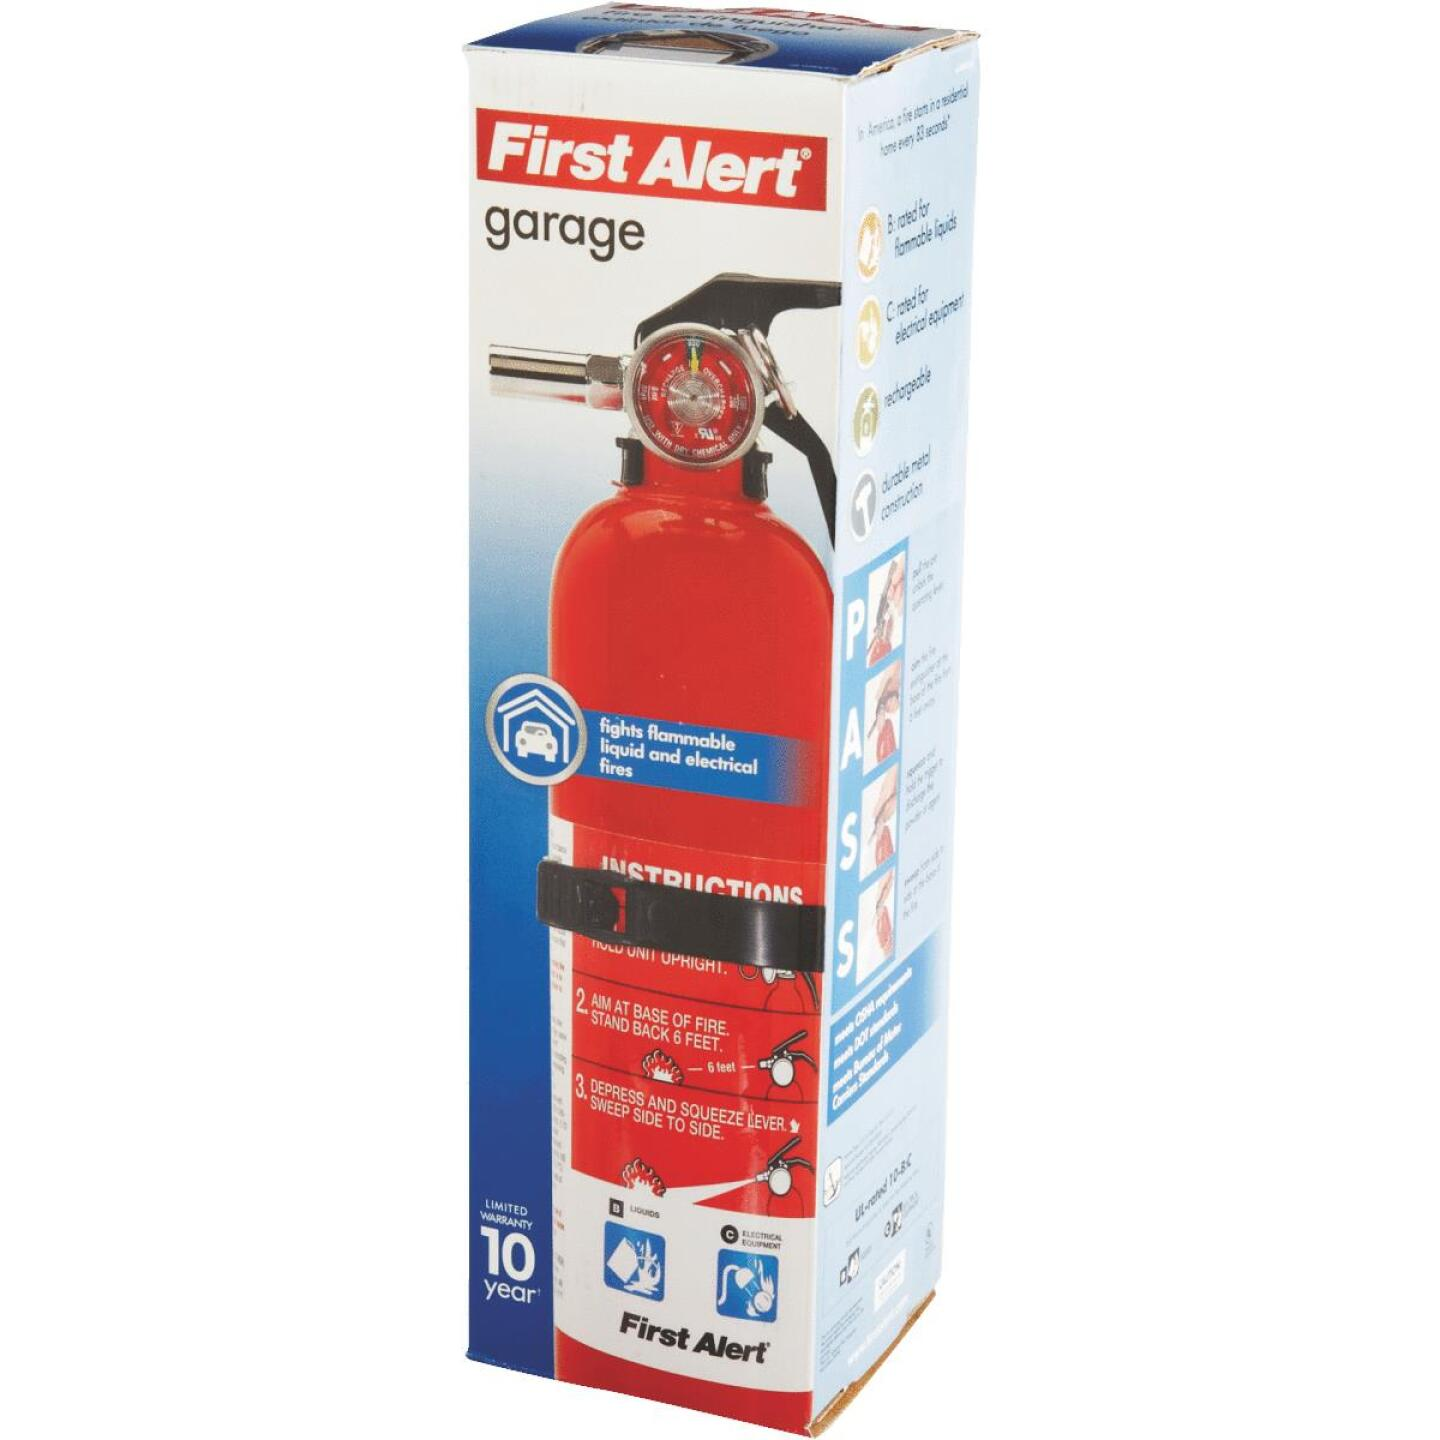 First Alert 10-B:C Rechargeable Garage Fire Extinguisher Image 2